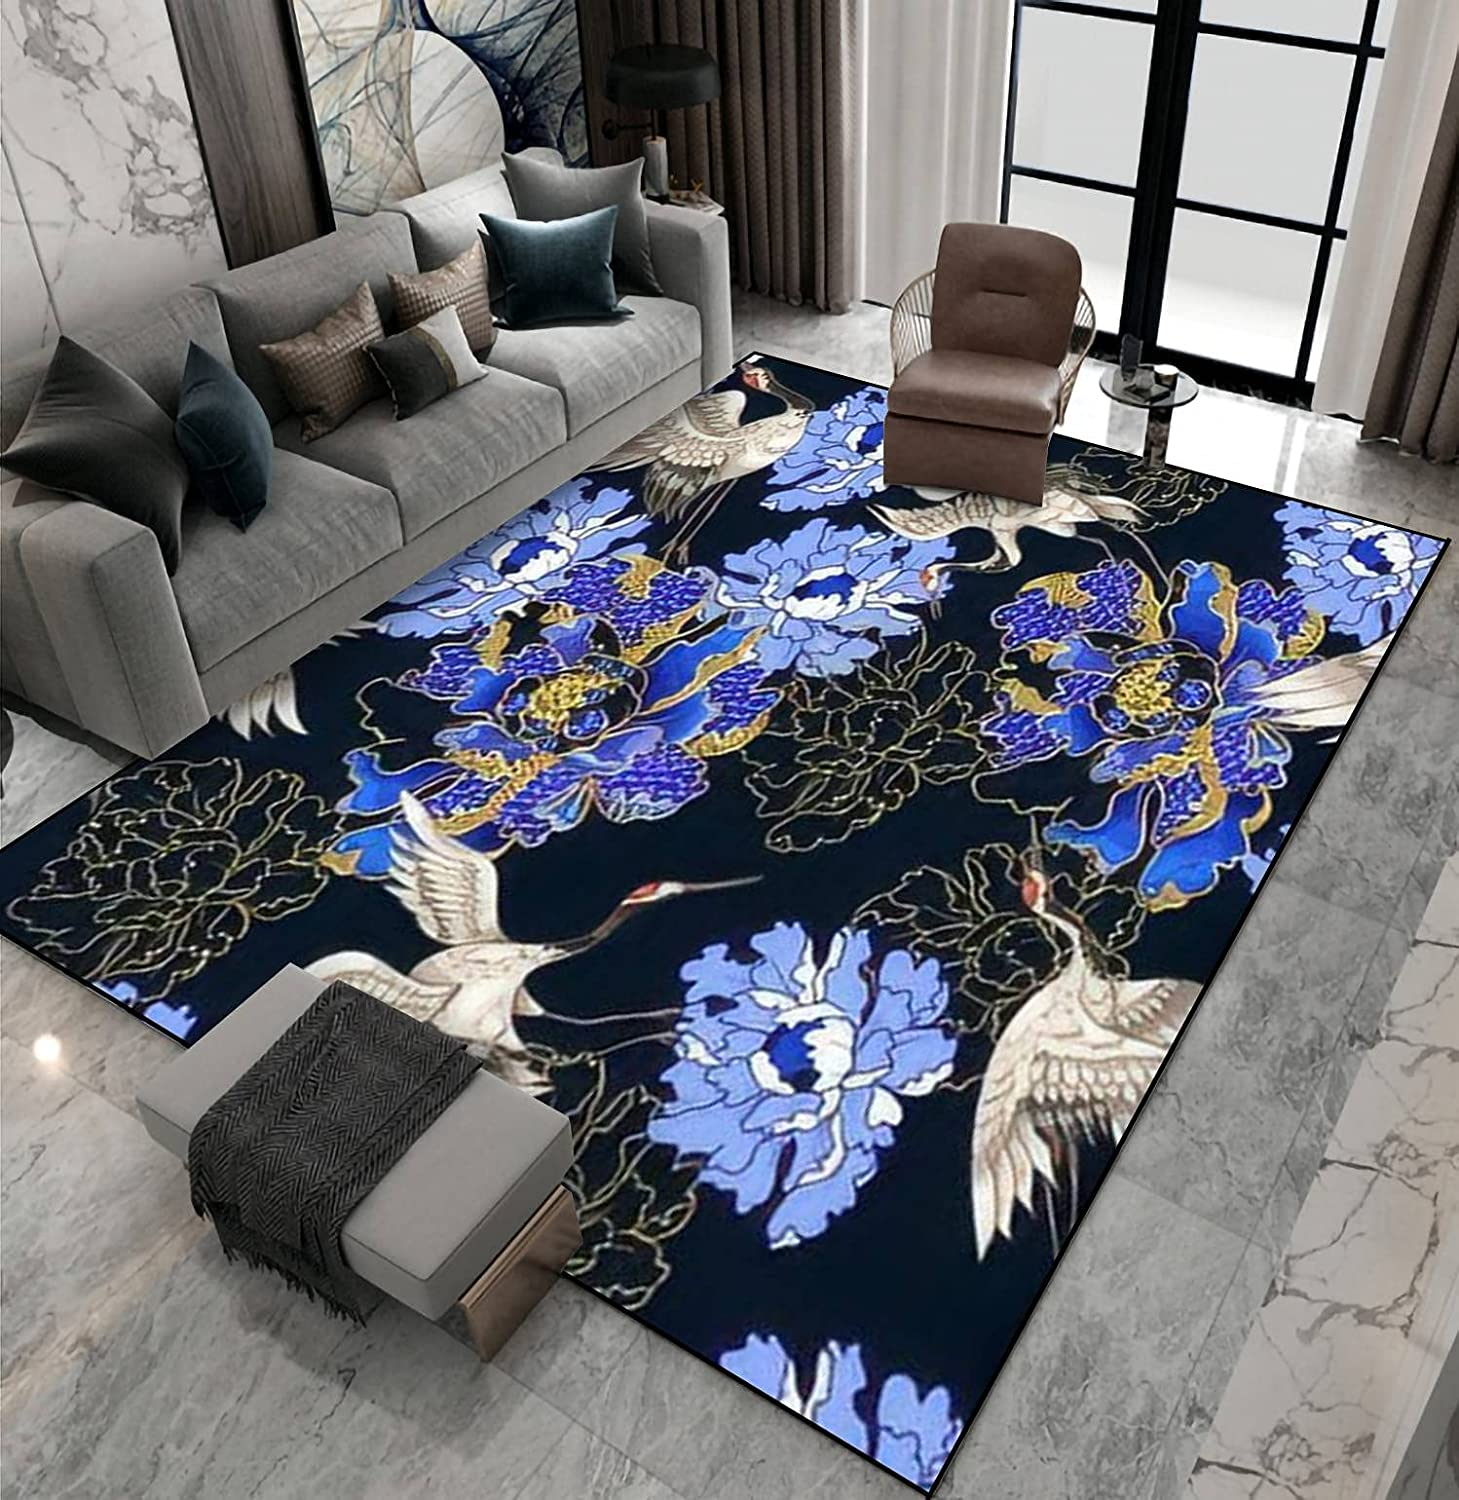 Area Rug Non-Slip 25% OFF Columbus Mall Floor Mat White Pattern with Japanese Seamless